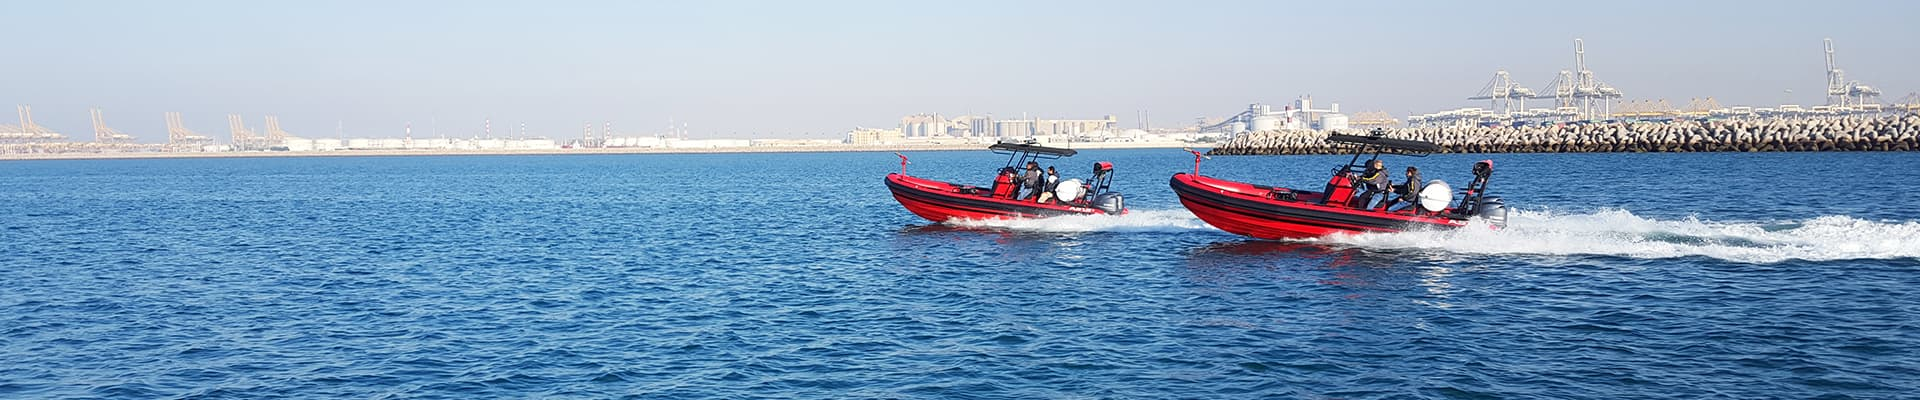 fire-rescue-rigid-inflatable-boats-1